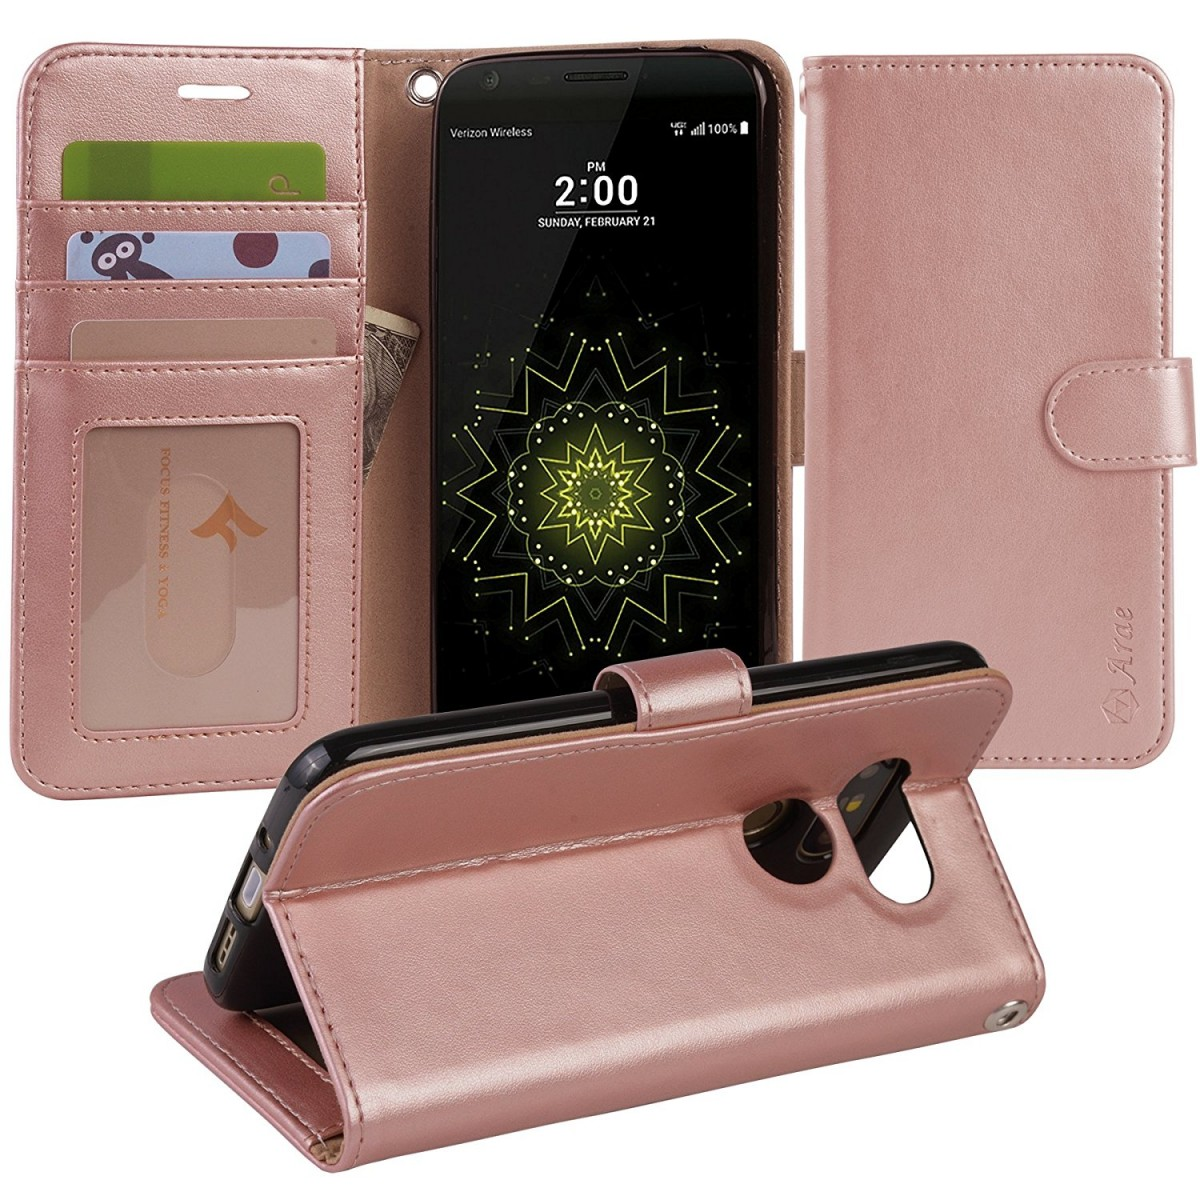 competitive price dd9d6 a2e92 LG G5 Case, Arae [Wrist Strap] Flip Folio [Kickstand Feature] PU leather  wallet case with IDandCredit Card Pockets For LG G5 (rosegold)